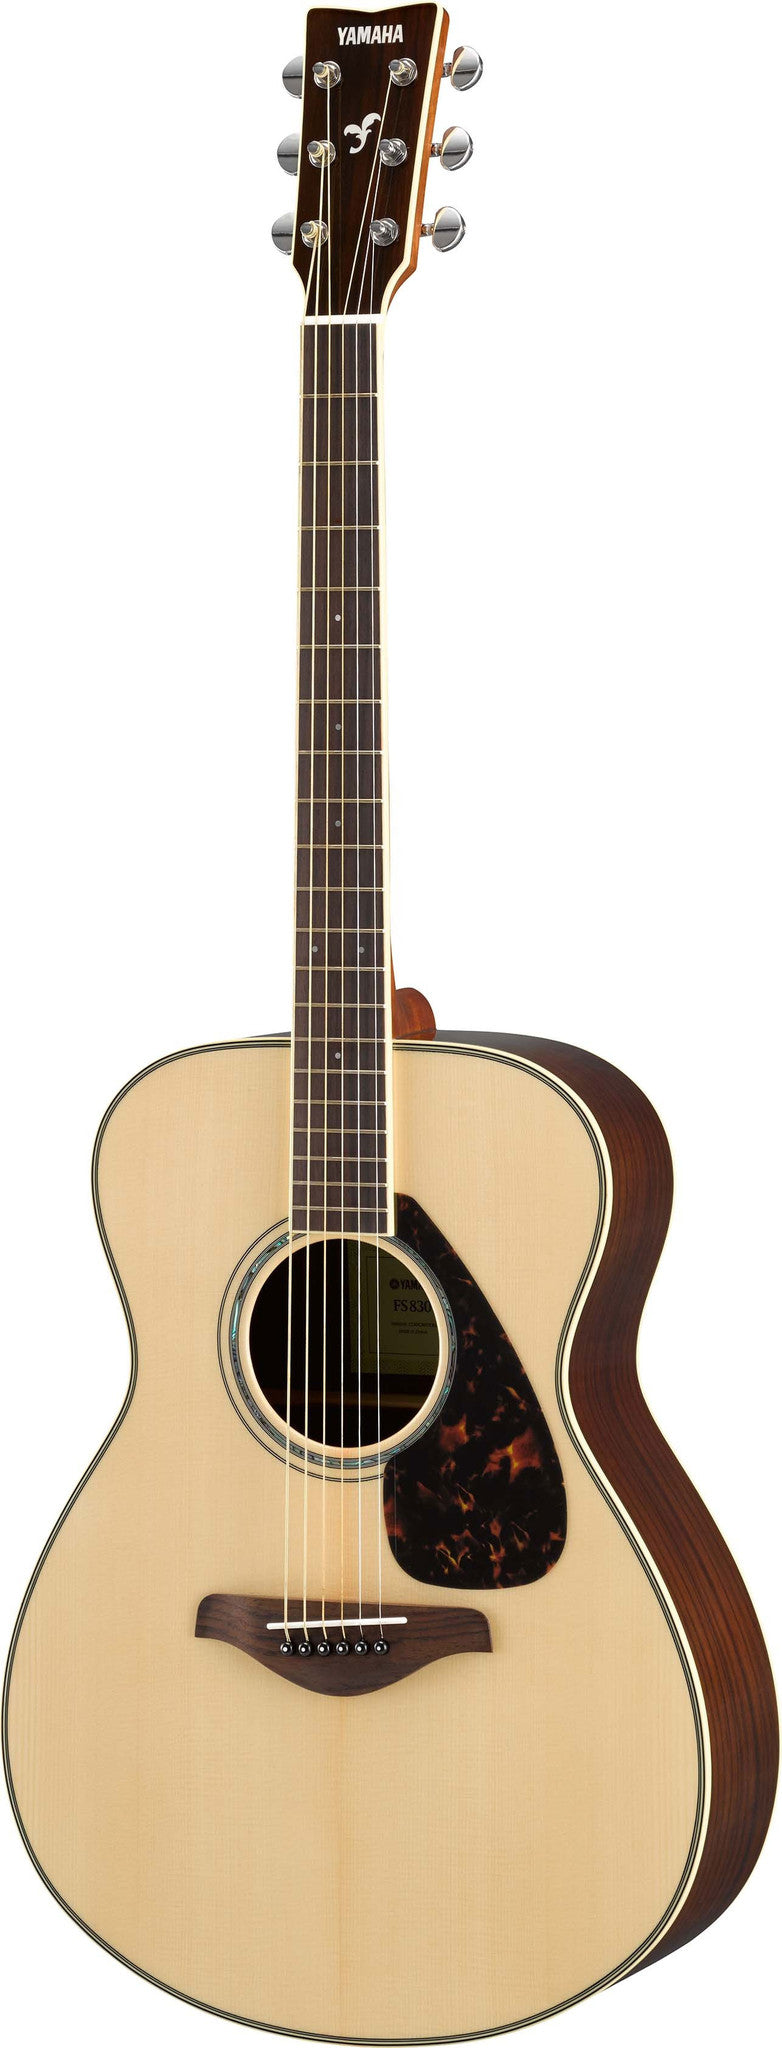 Yamaha FS830 Small Body Acoustic Guitar Bundle